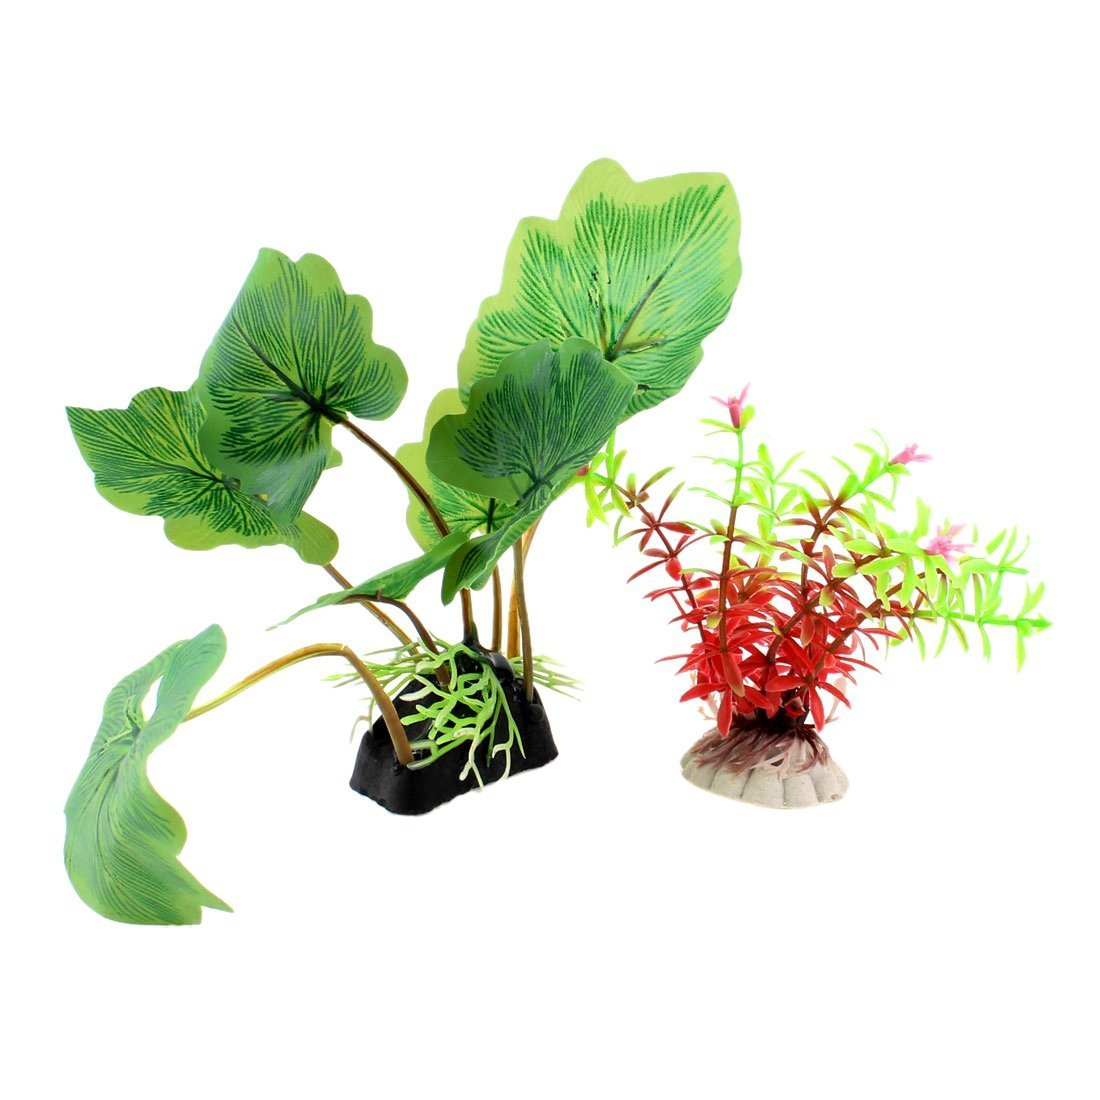 1Pc 2 Pieces Floral Accent Fish Tank Water Plants, 16cm, Green Red